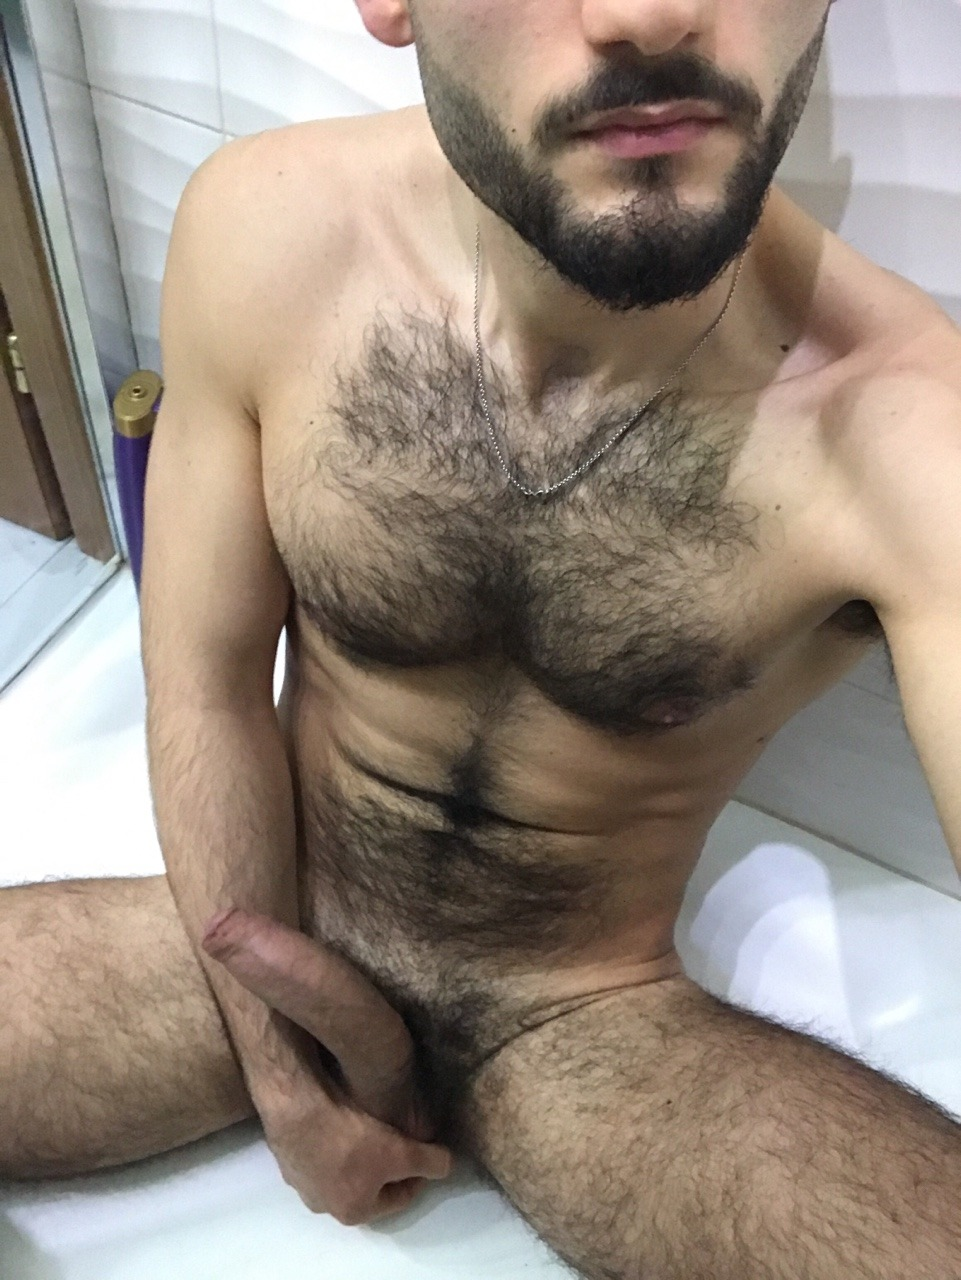 I need help to lower my erection in the bathroom